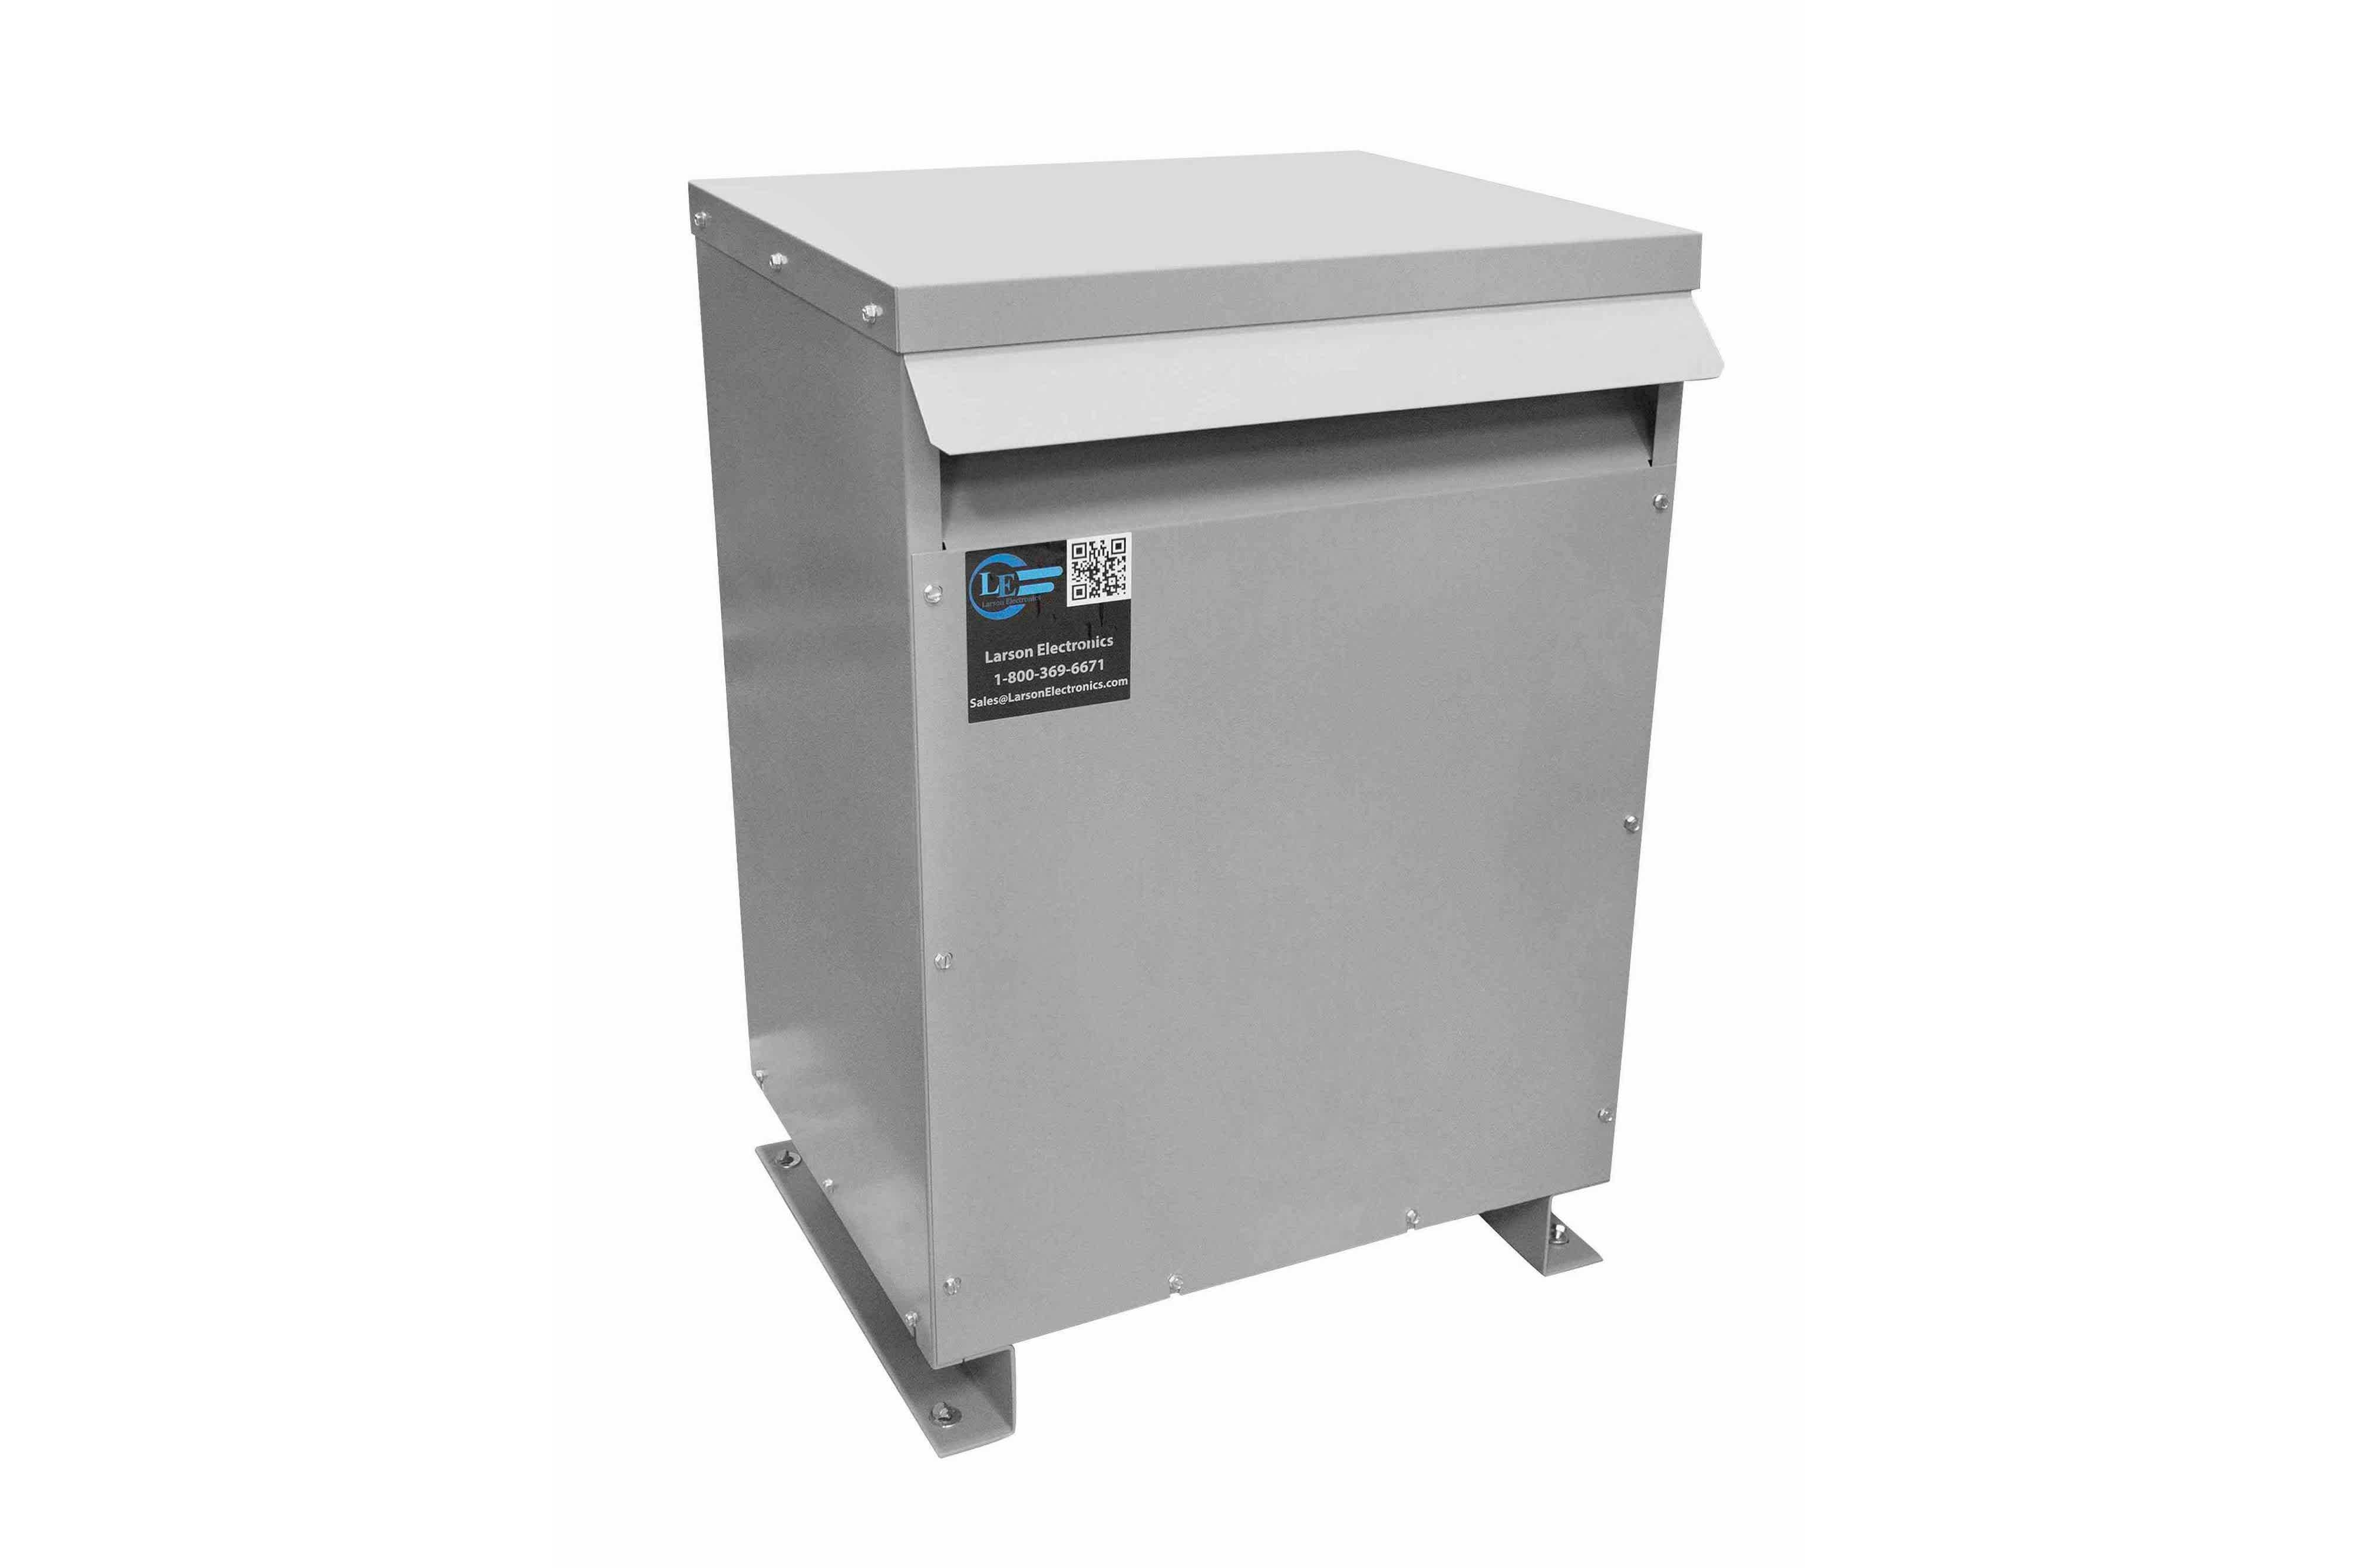 47.5 kVA 3PH Isolation Transformer, 460V Wye Primary, 575Y/332 Wye-N Secondary, N3R, Ventilated, 60 Hz